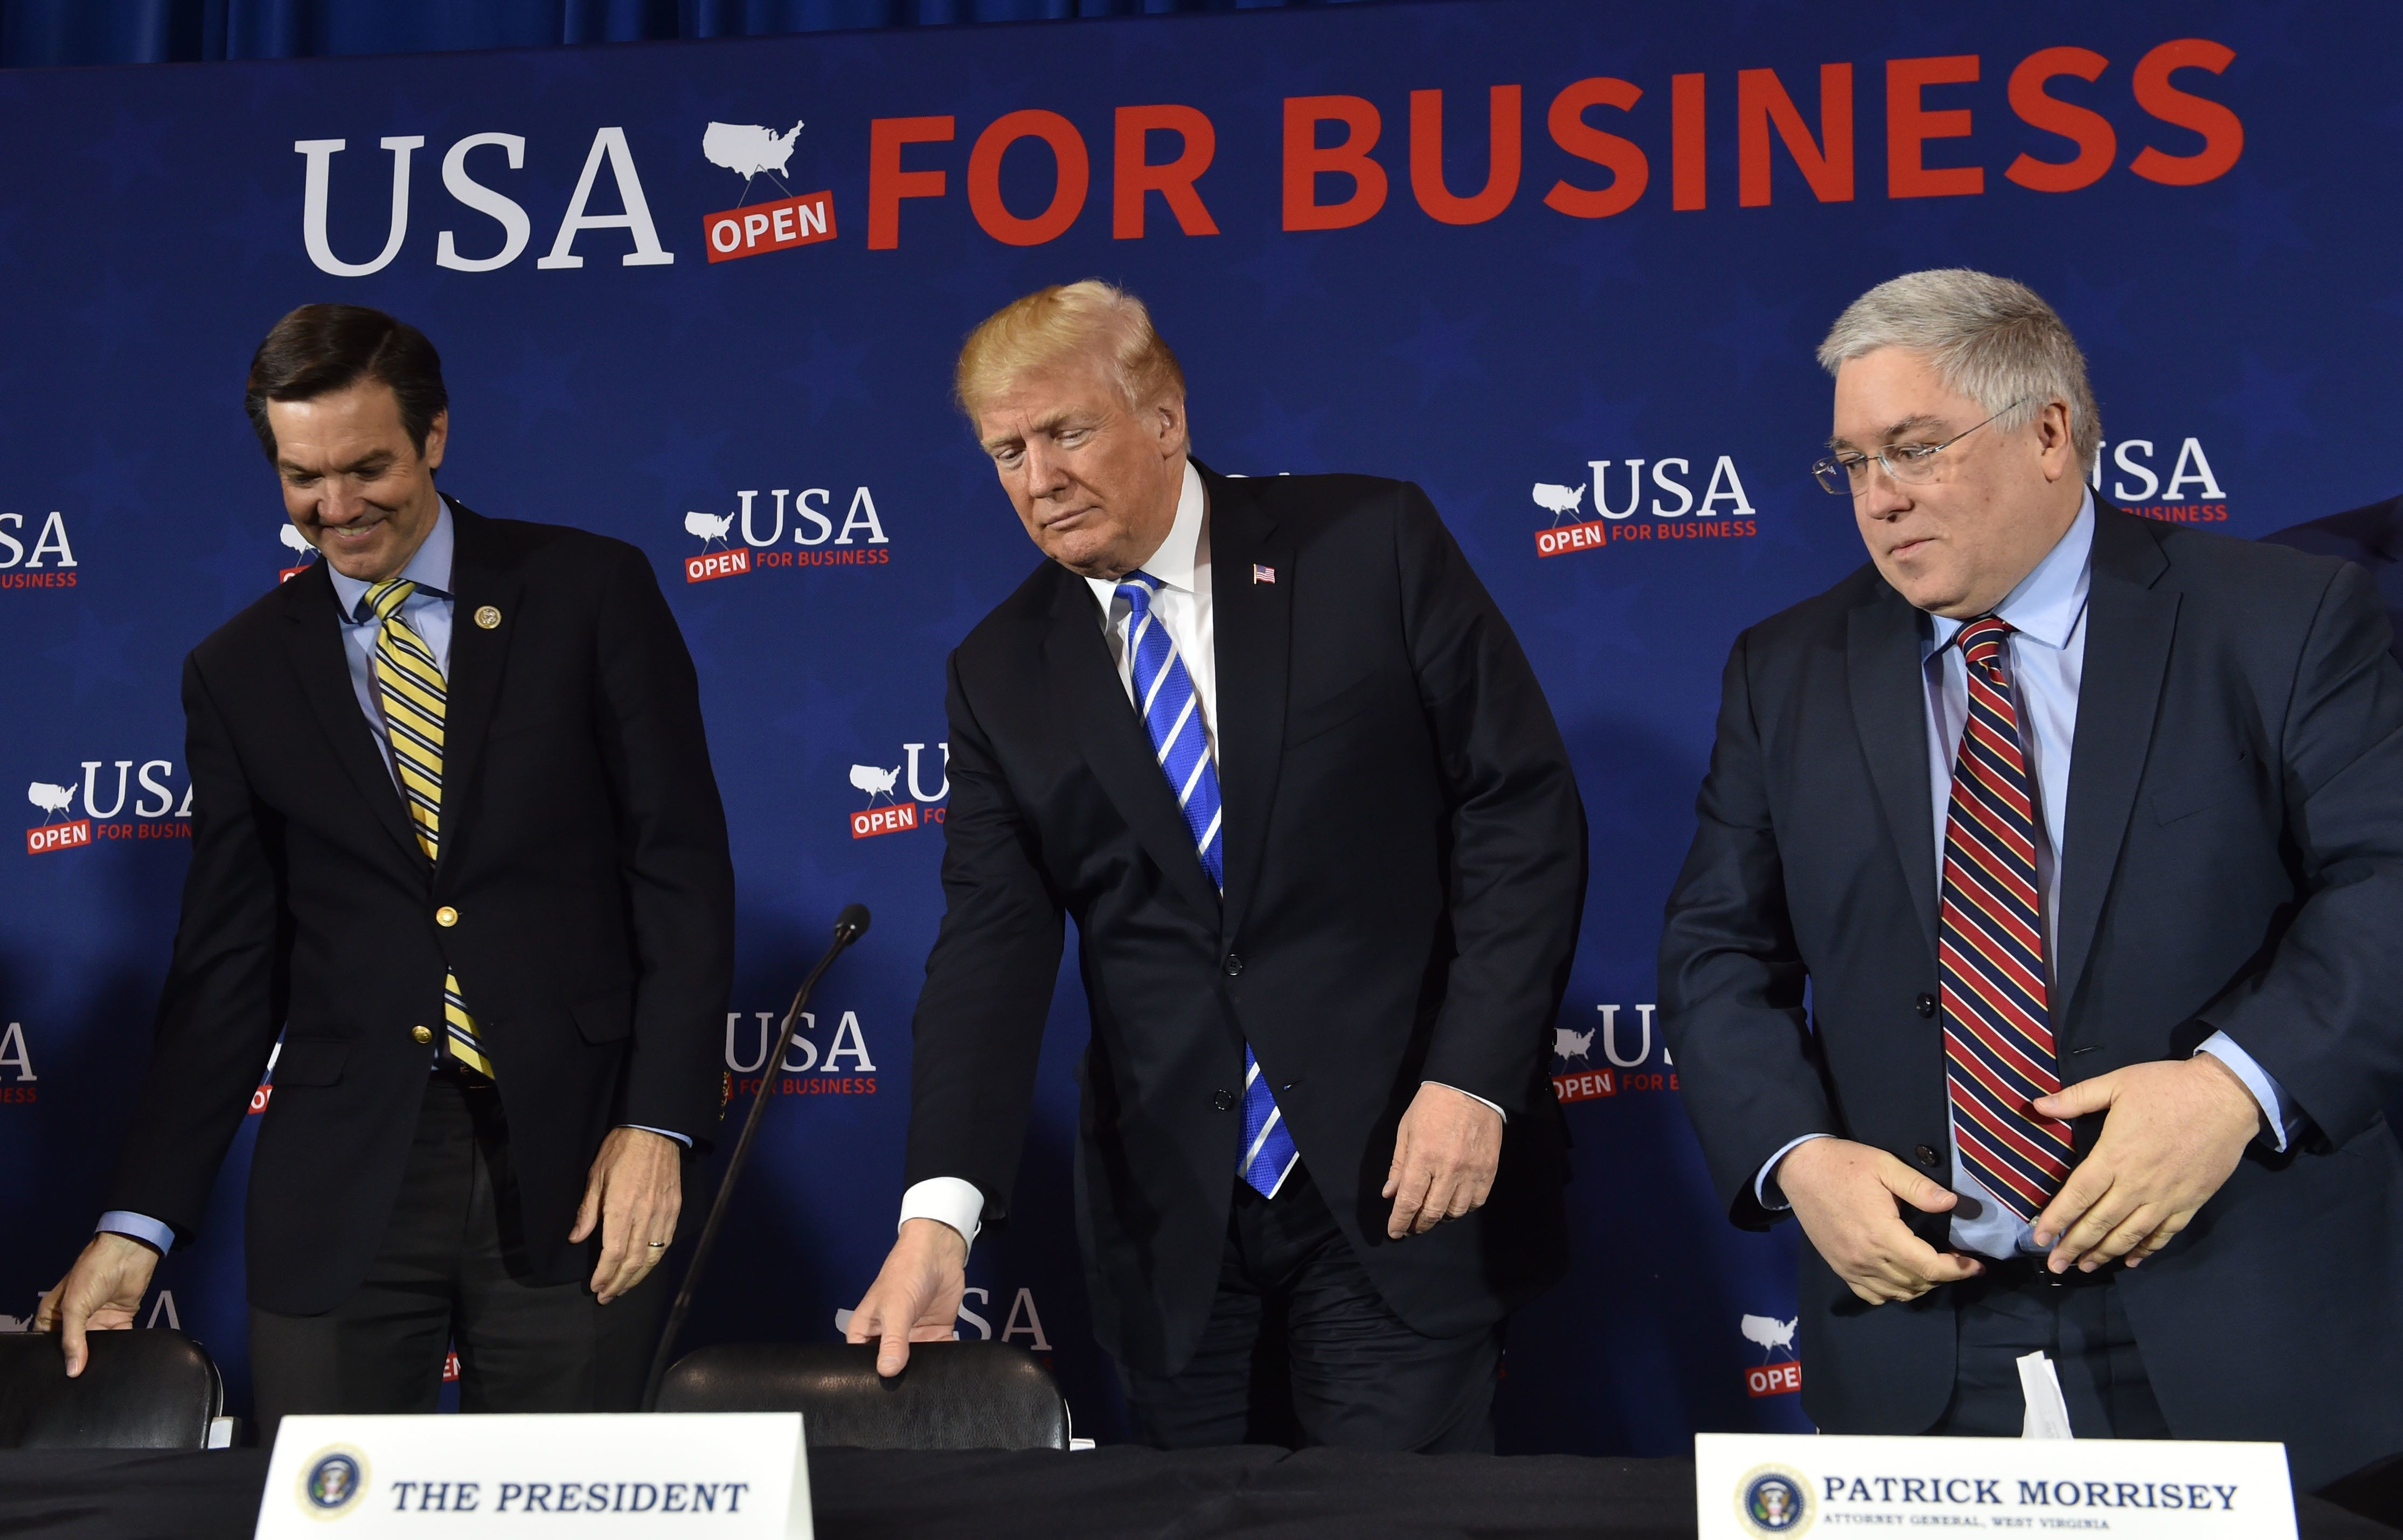 President Donald Trump arrives for a roundtable discussion on tax reform in White Sulpher Springs, West Virginia, on Apr